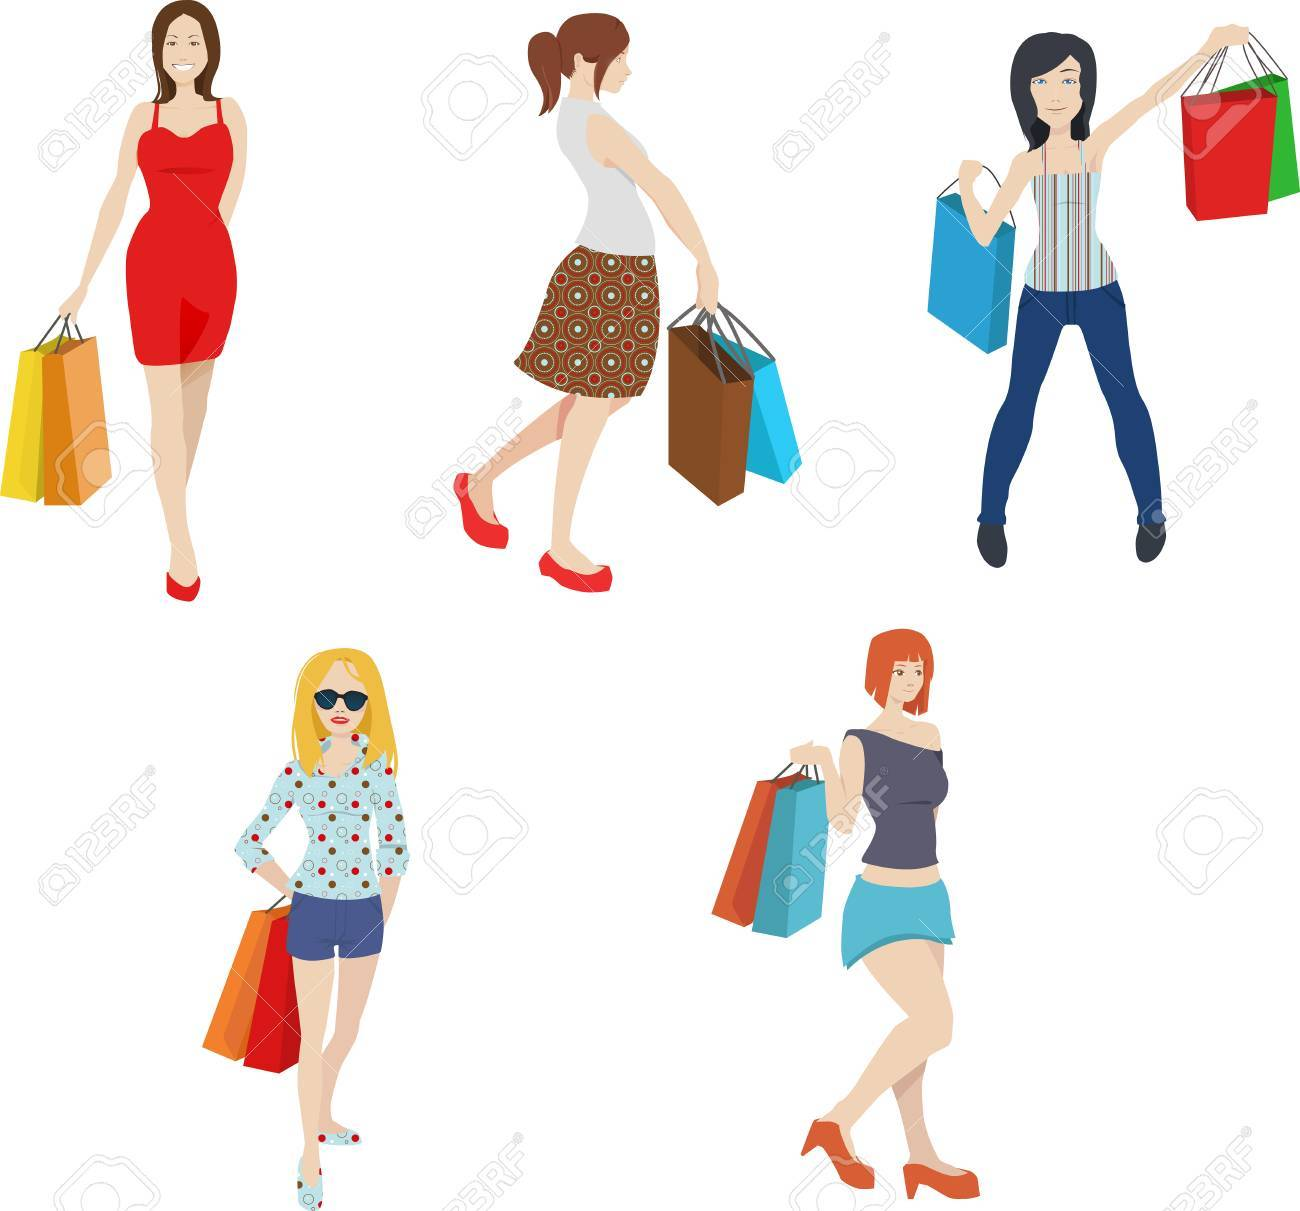 shopping women clip art fashionable trendy girl clipart royalty rh 123rf com african american woman shopping clipart african american woman shopping clipart